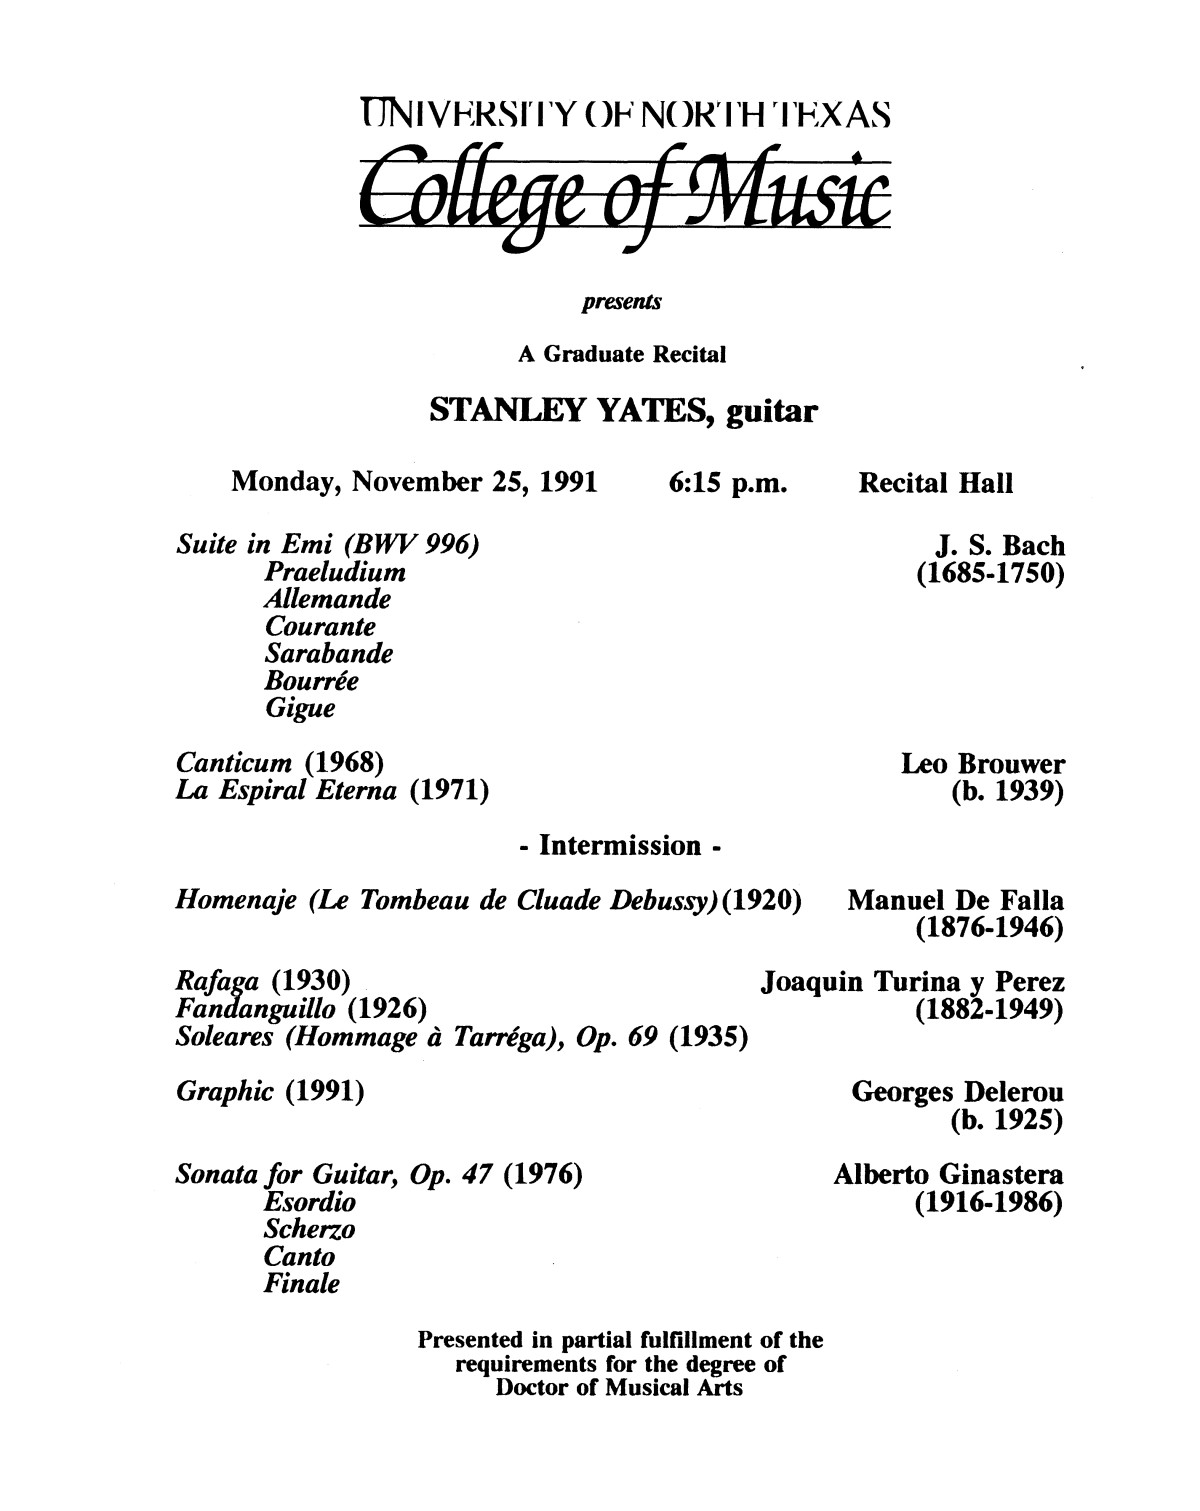 College of Music program book 1991-1992 Student Performances Vol. 2                                                                                                      [Sequence #]: 85 of 310